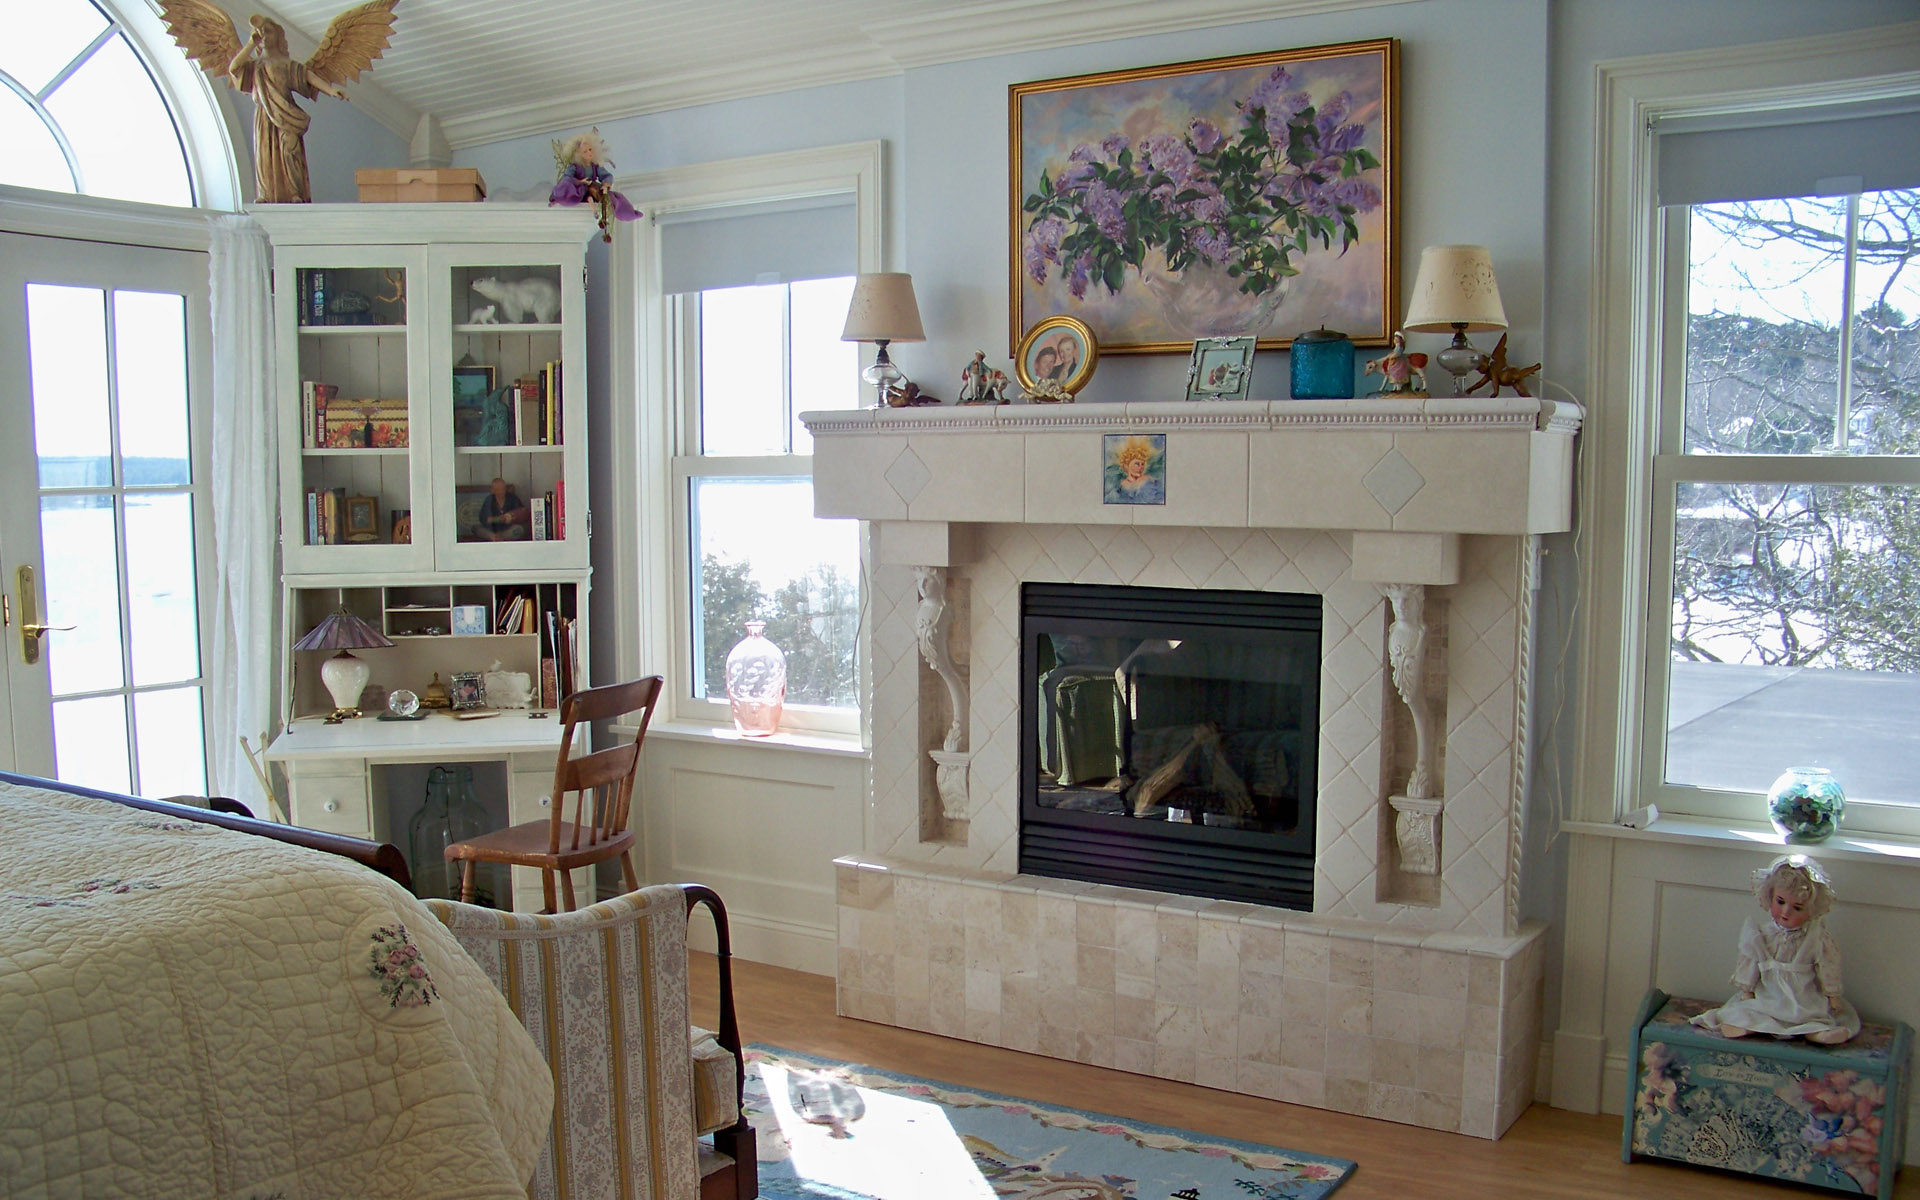 Western-style home fireplace 23174